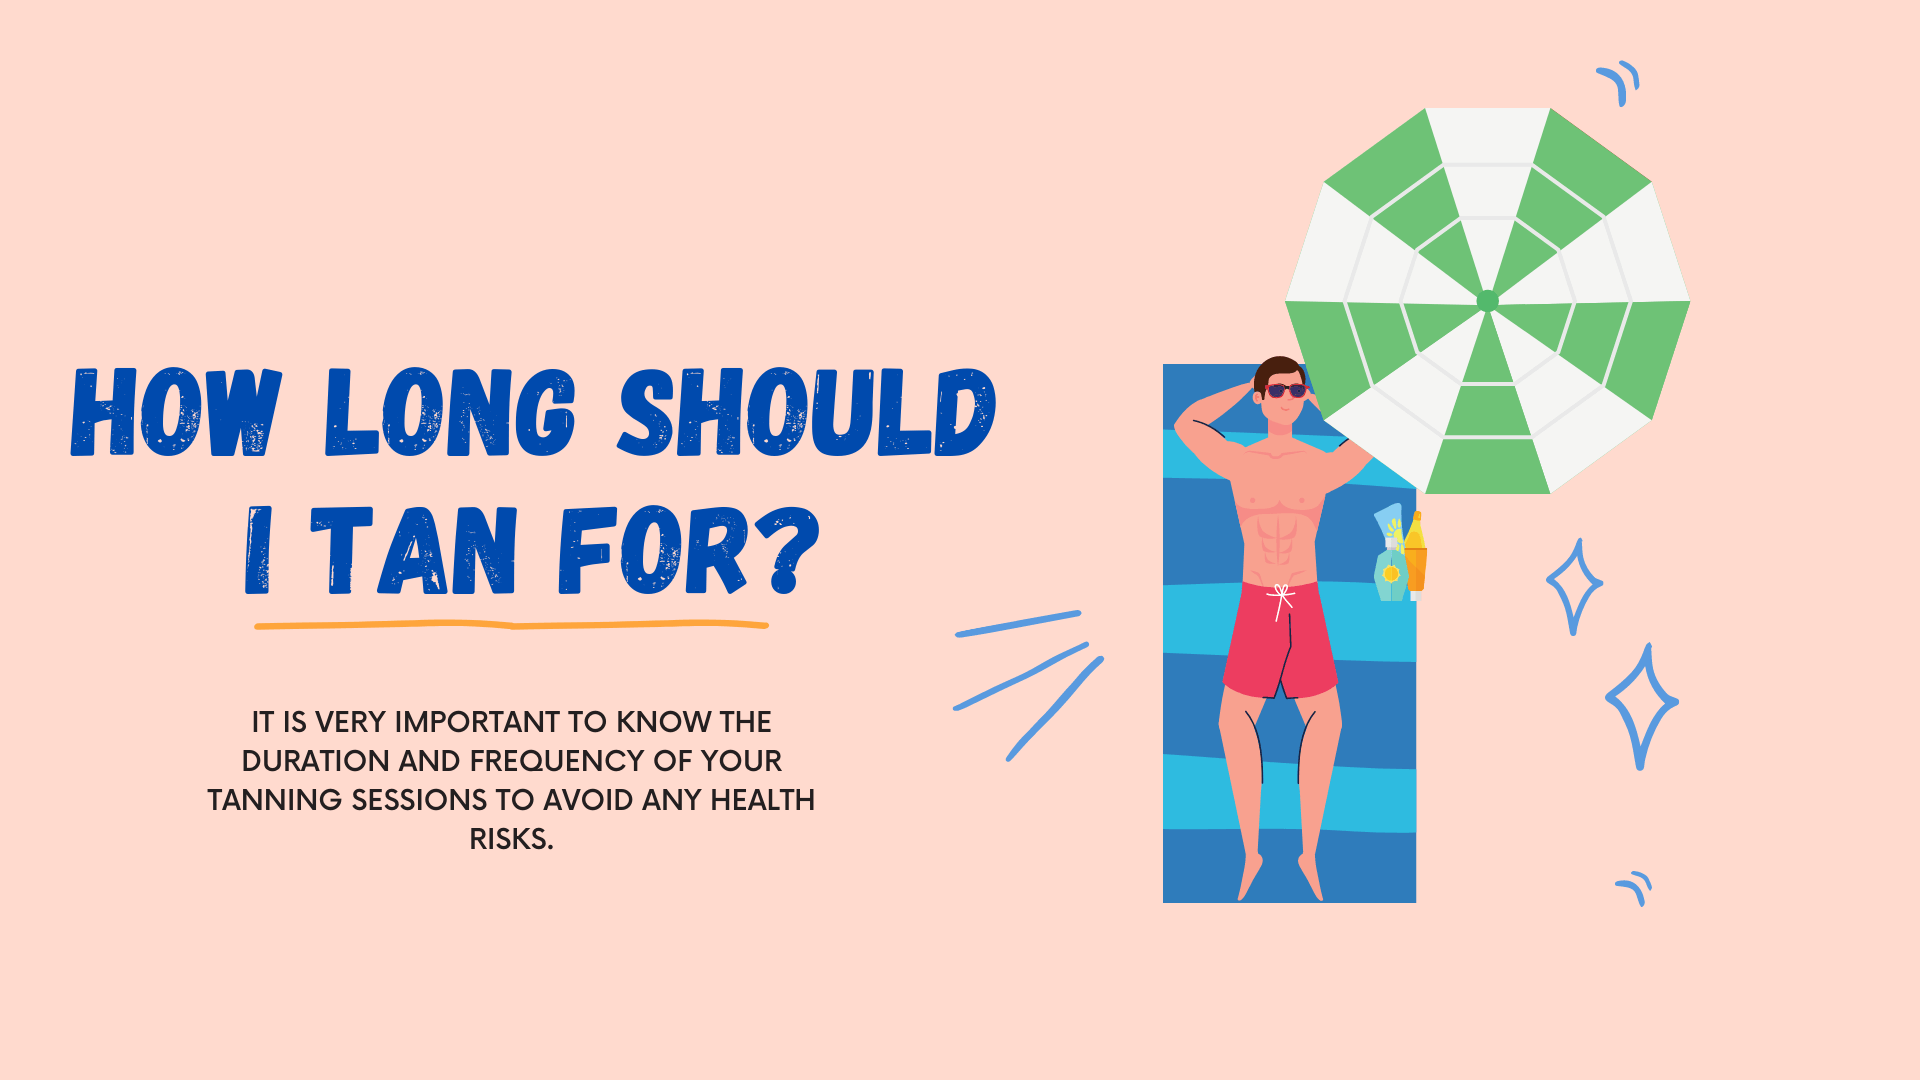 How long should I tan for